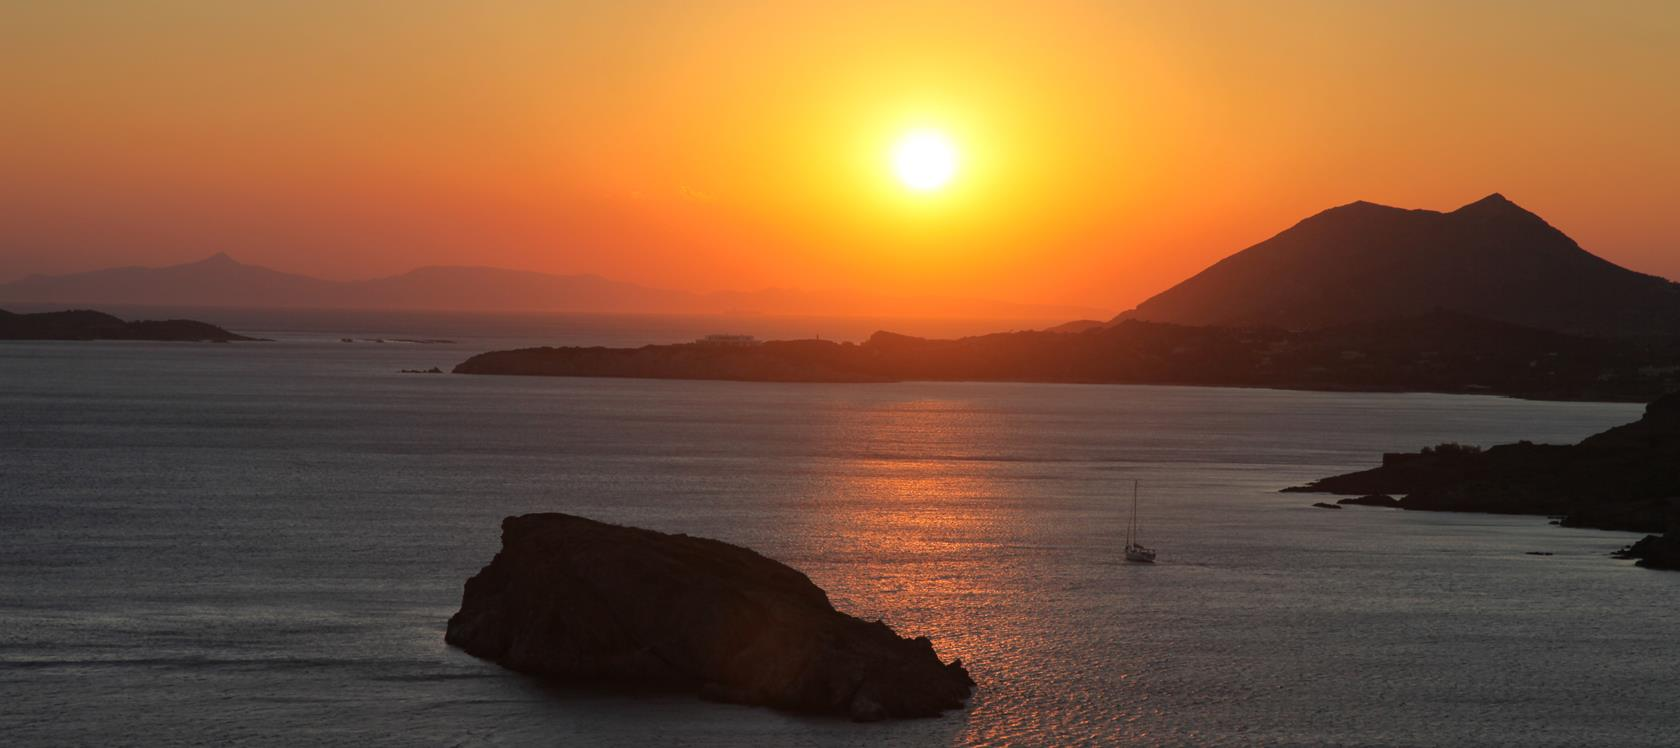 The famous sunset at Sounio